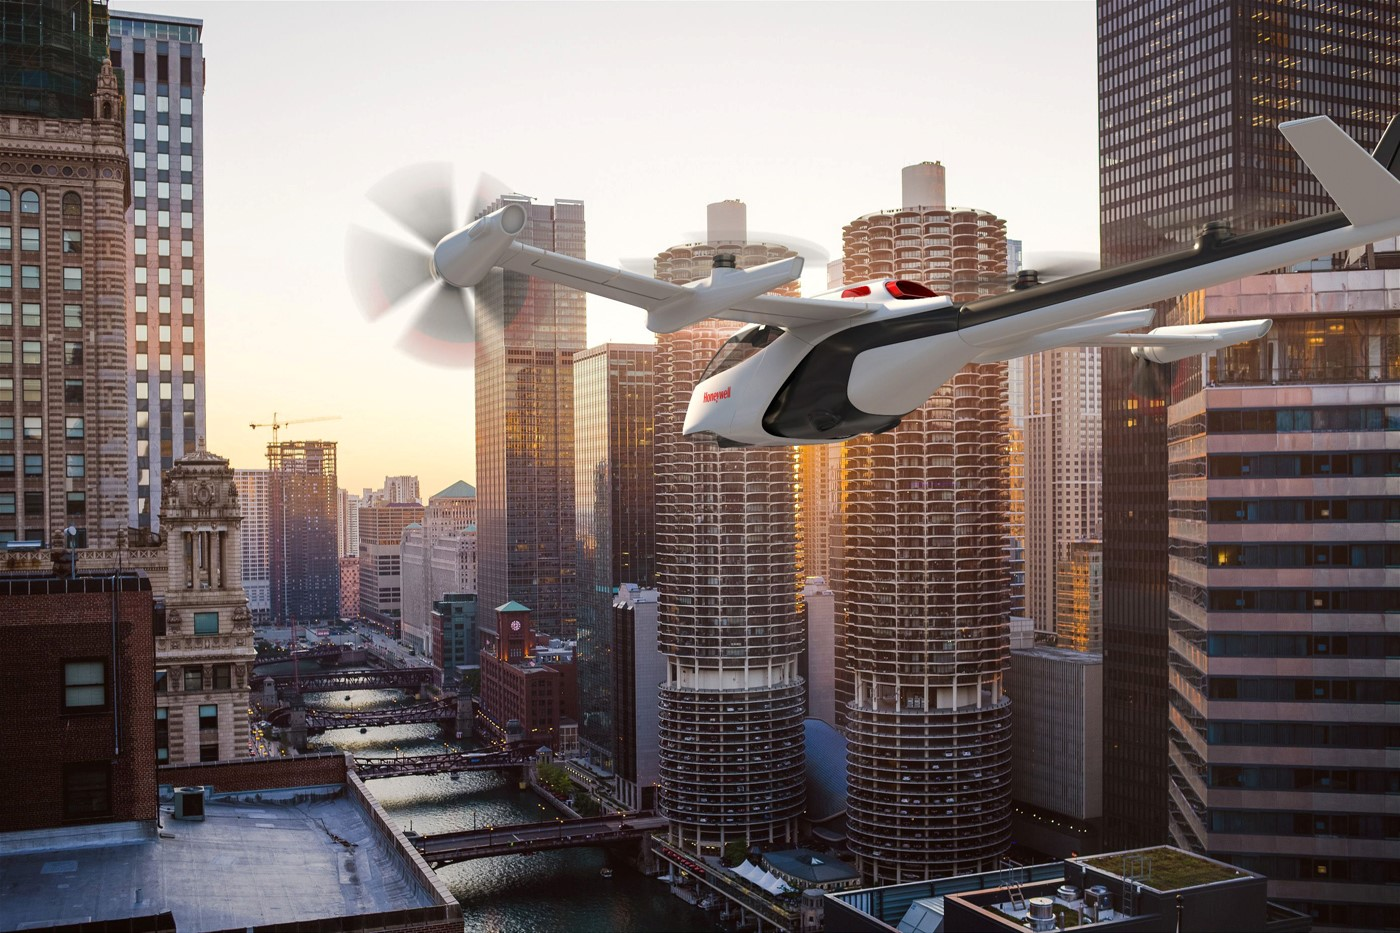 Register for the 9th Biennial Autonomous VTOL Technical Meeting & 8th Annual Electric VTOL Symposium